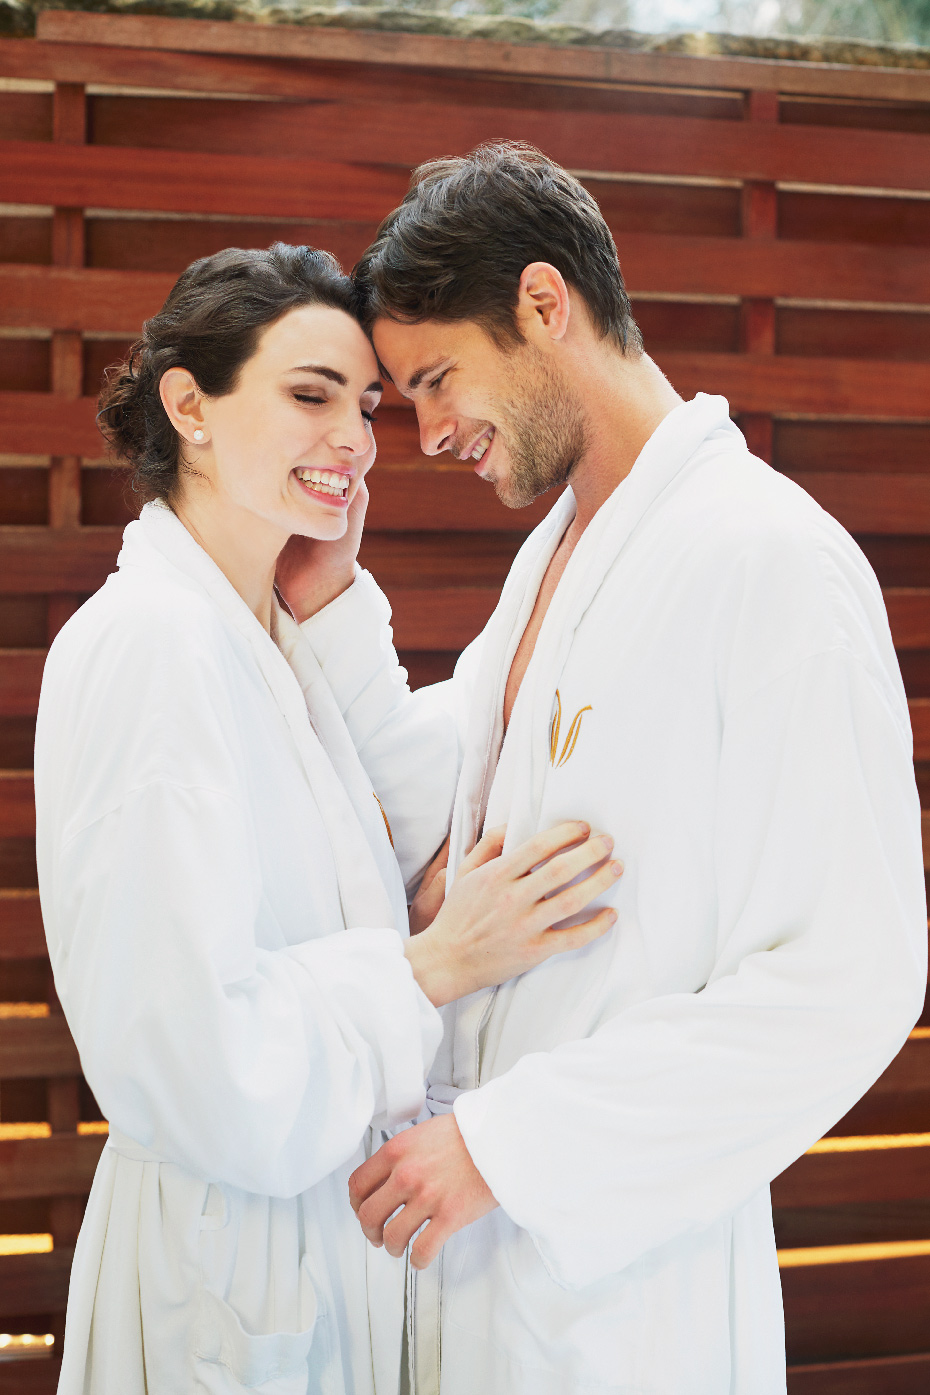 Stacey Van Berkel Photography I Young couple in white bathrobes hugging I The Umstead Hotel and Spa I Cary, North Carolina